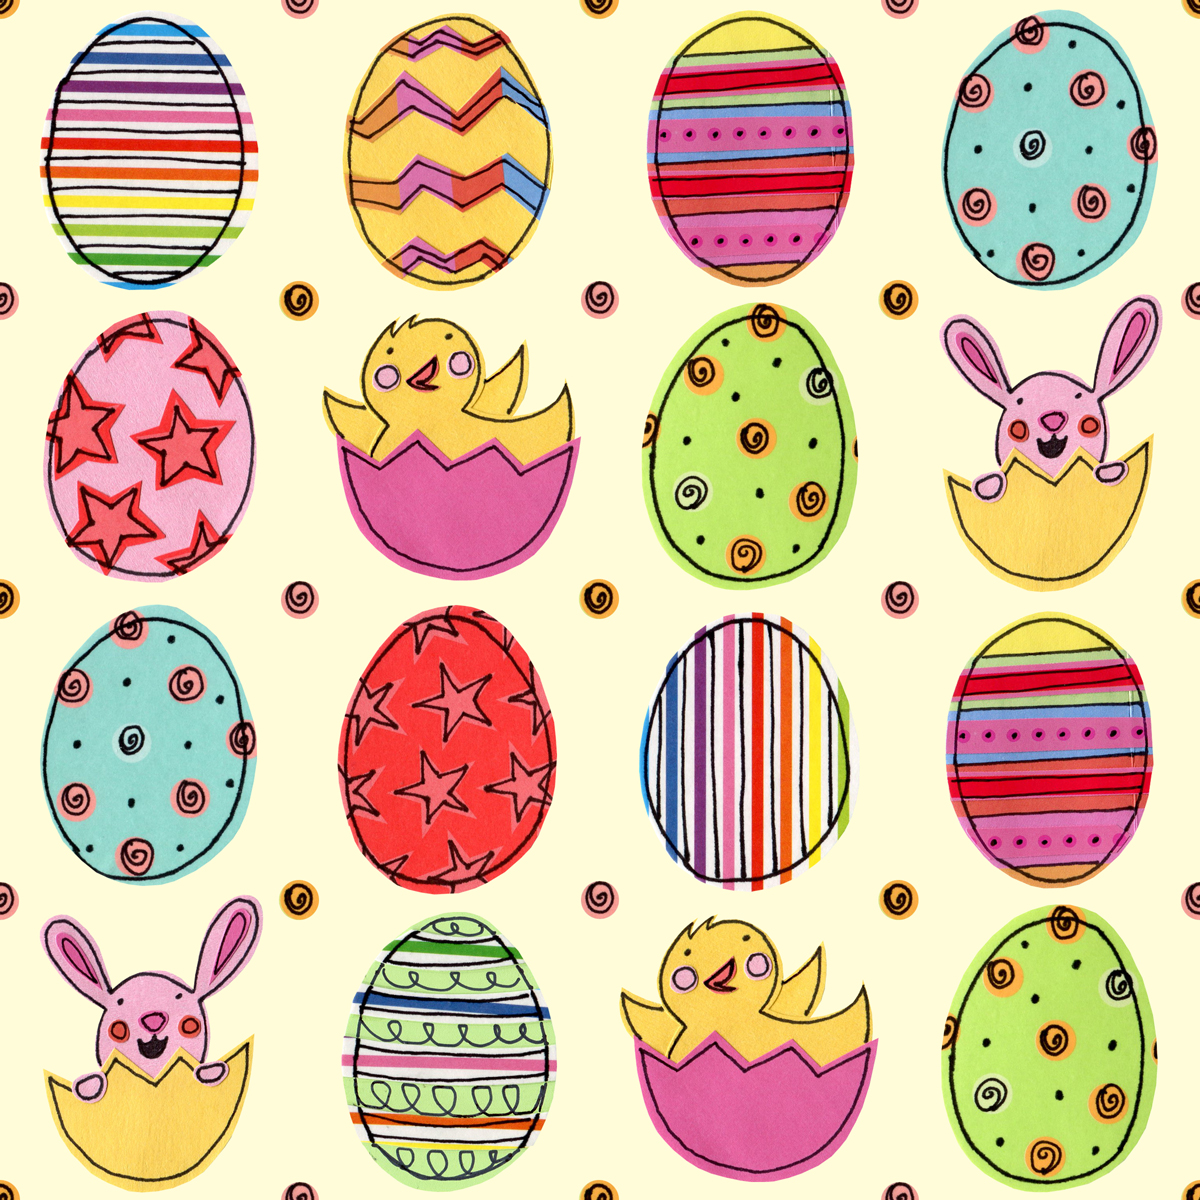 Bird Meets Worm Happy Easter Eggs Repeat Pattern